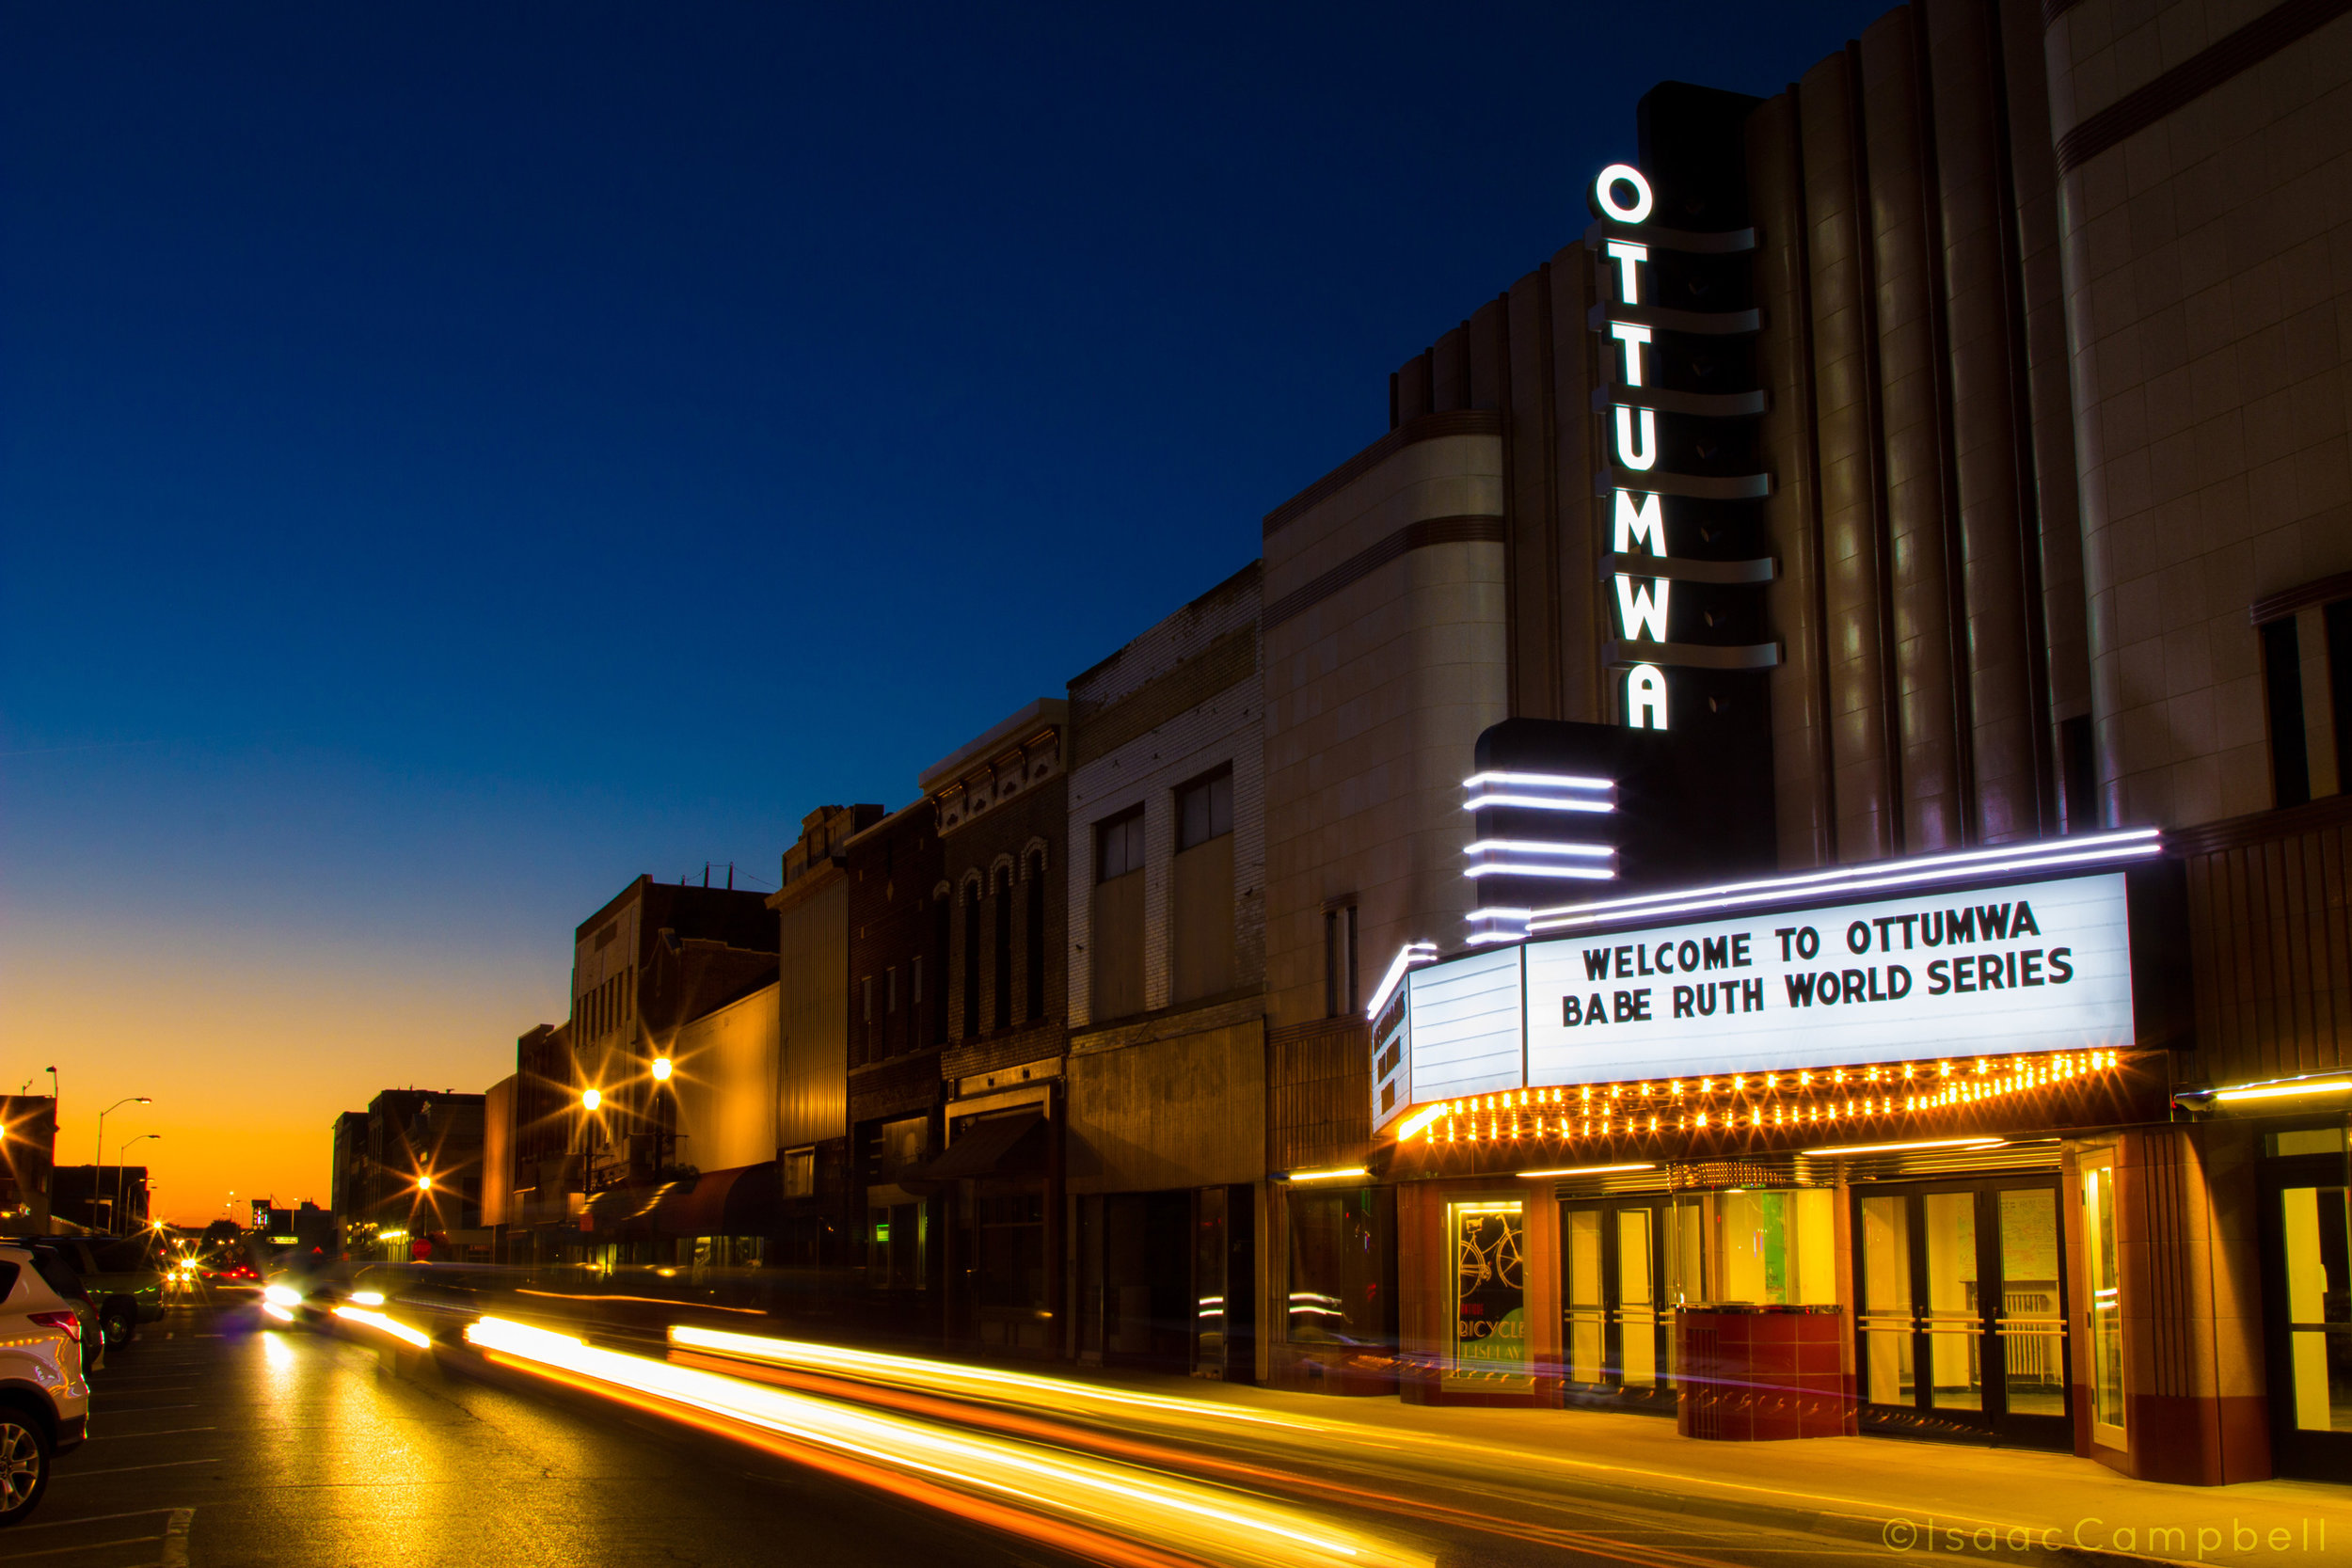 To see the entire Main Street Ottumwa collection, tap here.